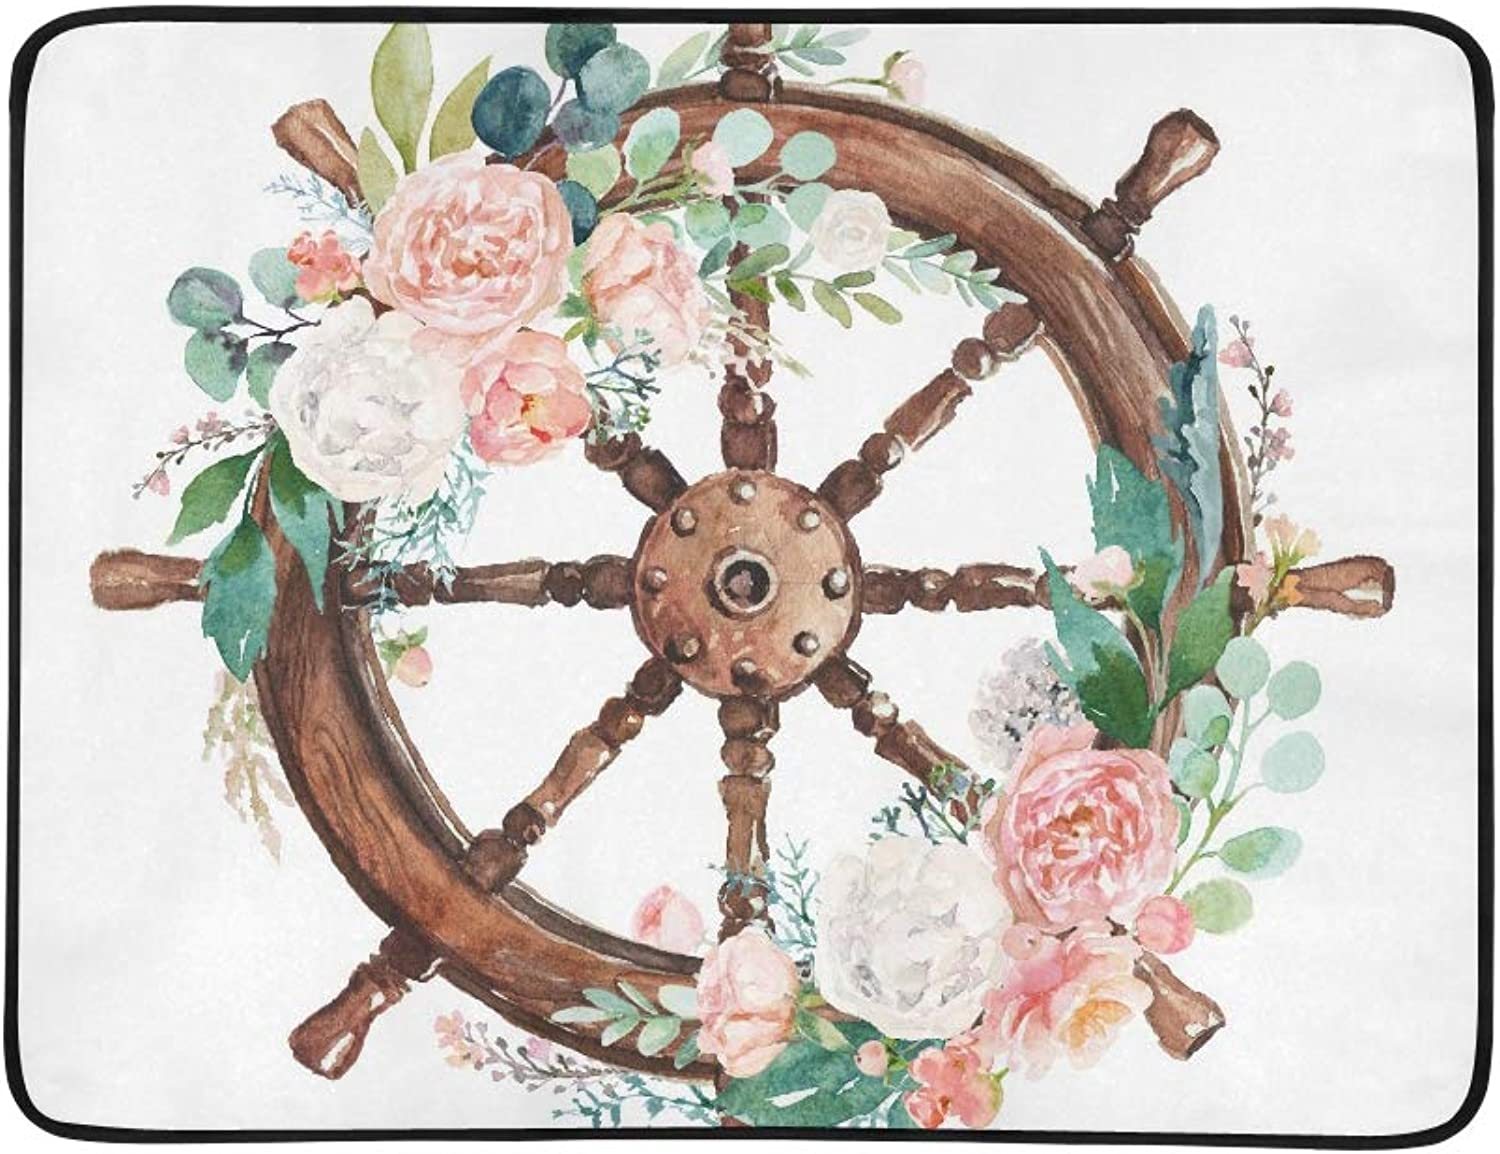 Watercolor Hand Drawn Nautical Marine Floral Ill Pattern Portable and Foldable Blanket Mat 60x78 Inch Handy Mat for Camping Picnic Beach Indoor Outdoor Travel